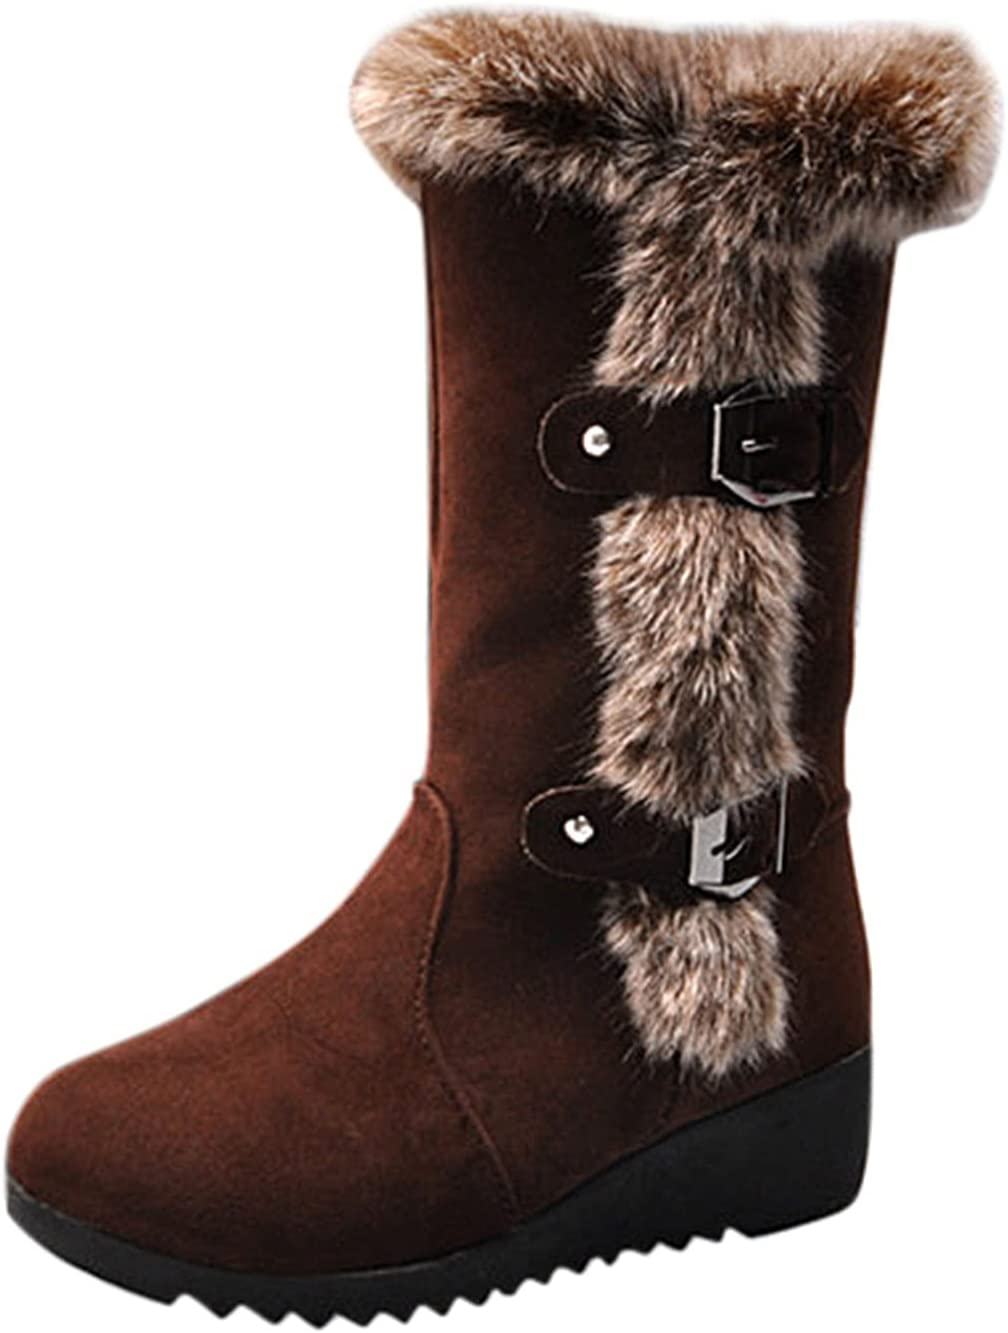 Fullwei Winter Boot for Women Limited time sale Round Platform Suede Boo Toe Max 51% OFF